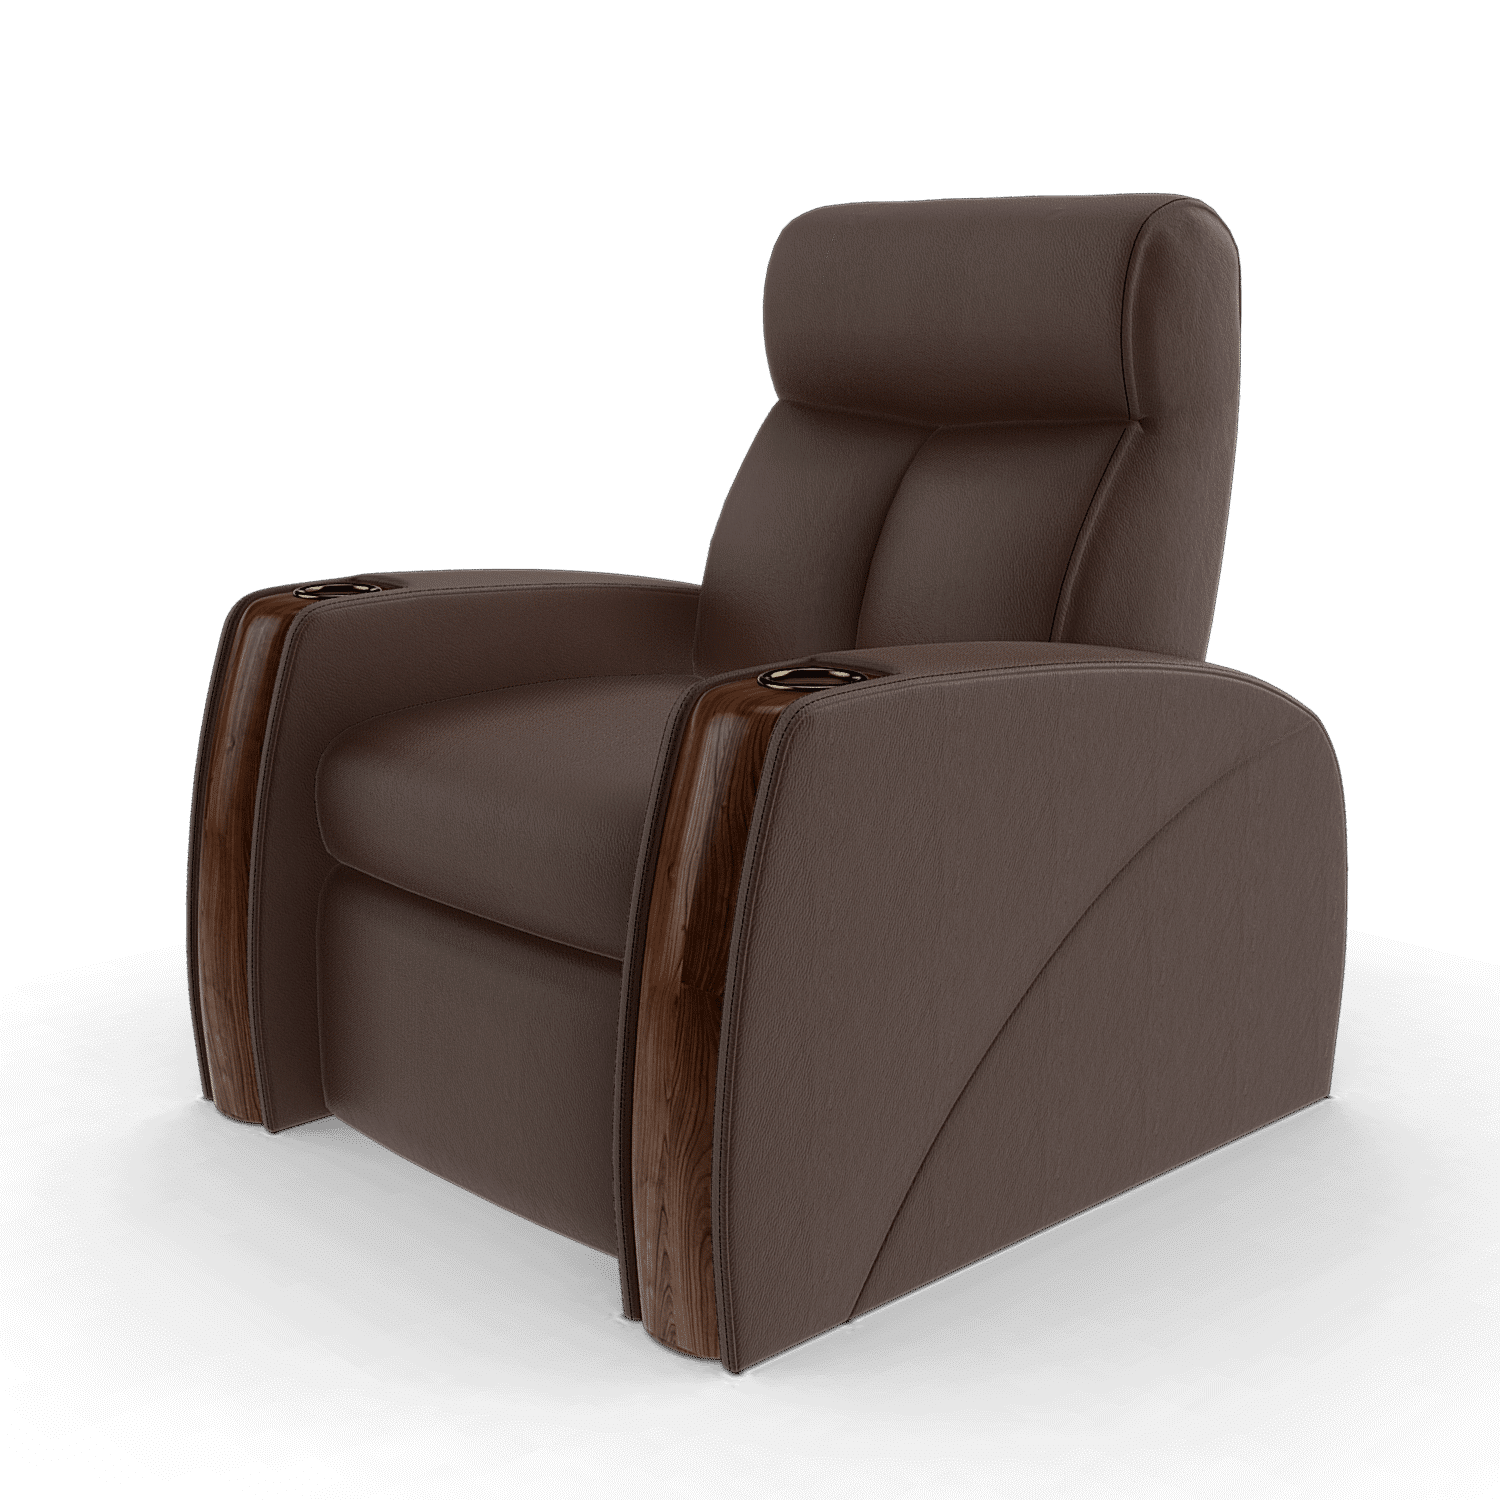 home_cinema_seats (1) j9_brown_